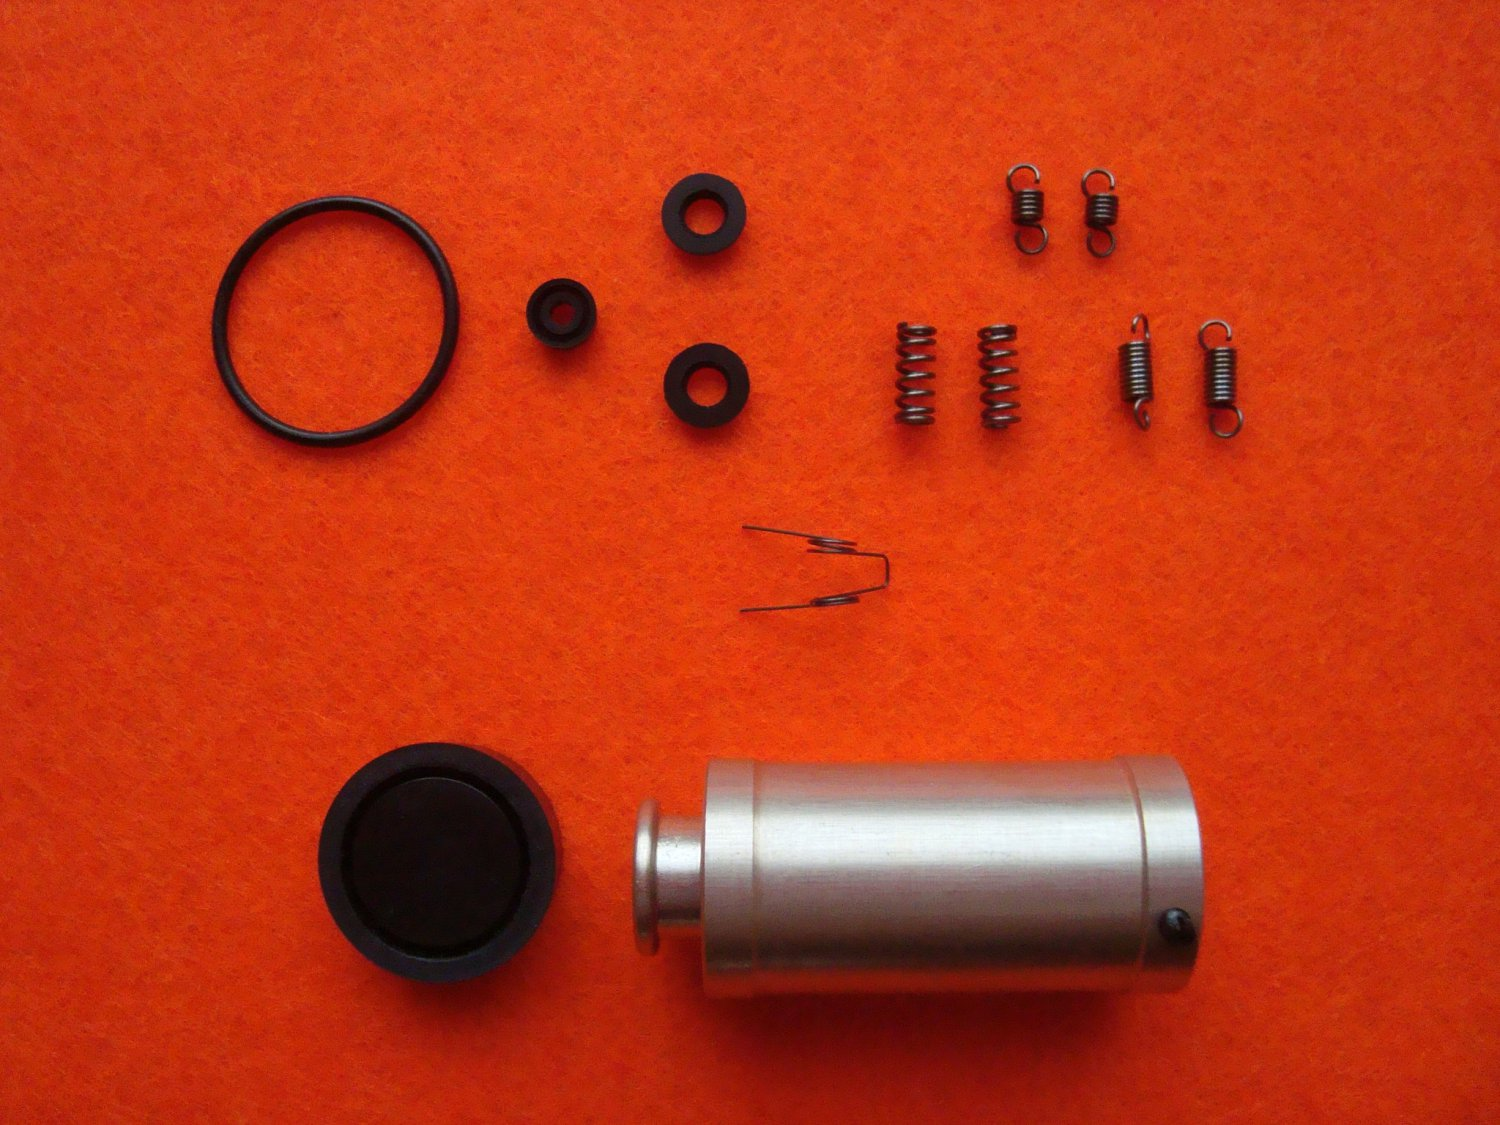 Repair kit IZH-46, MP-46M consists: seal, spring, o-rings, piston cuff, screw, details made to order